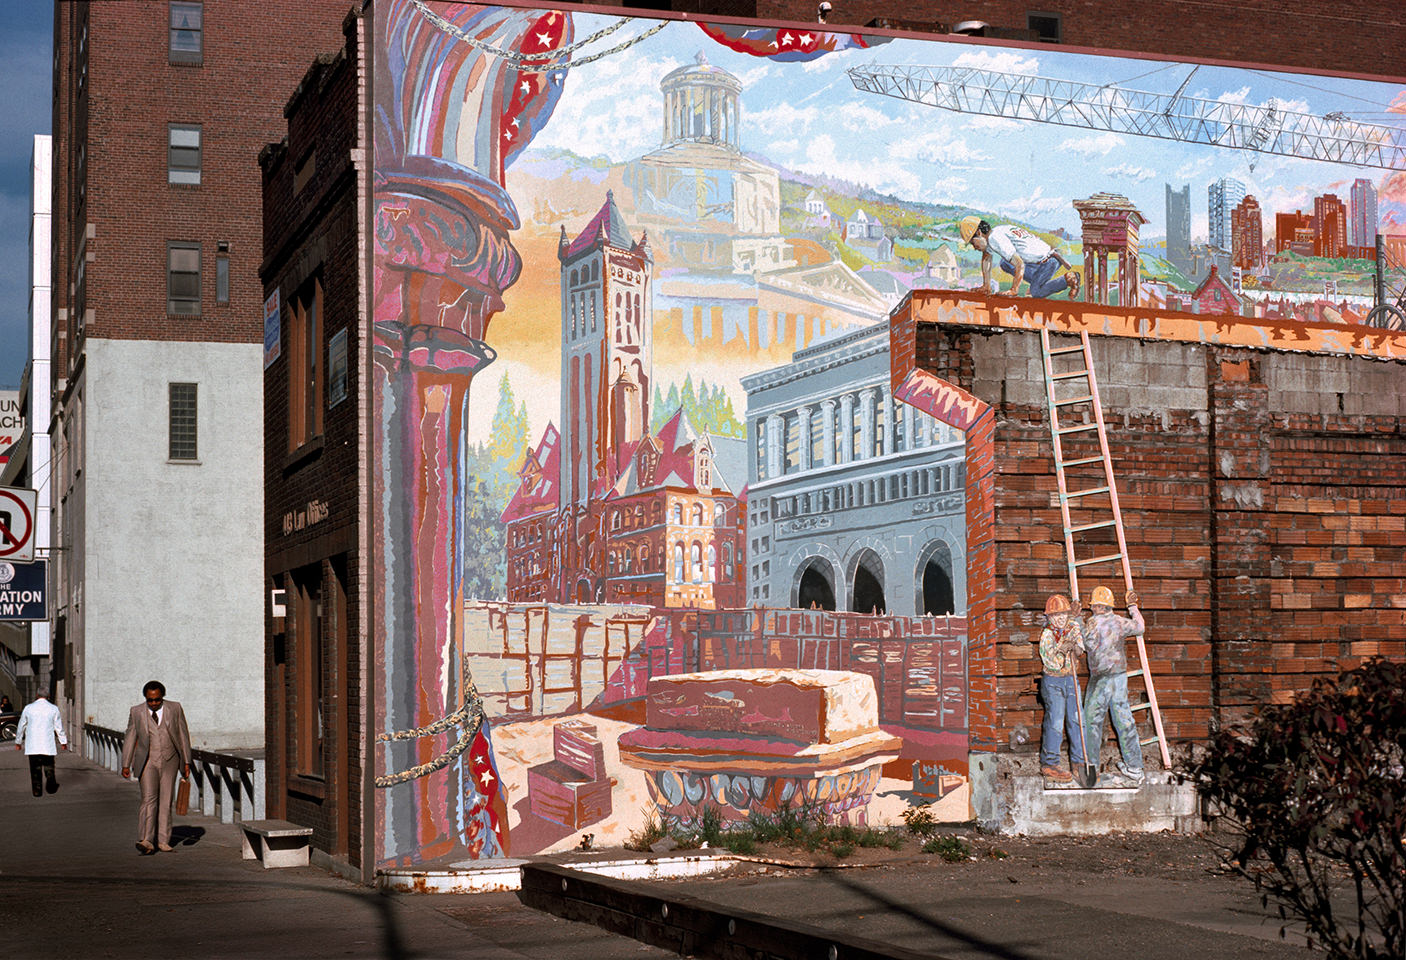 Mural at Grant Street and Boulevard of the Allies